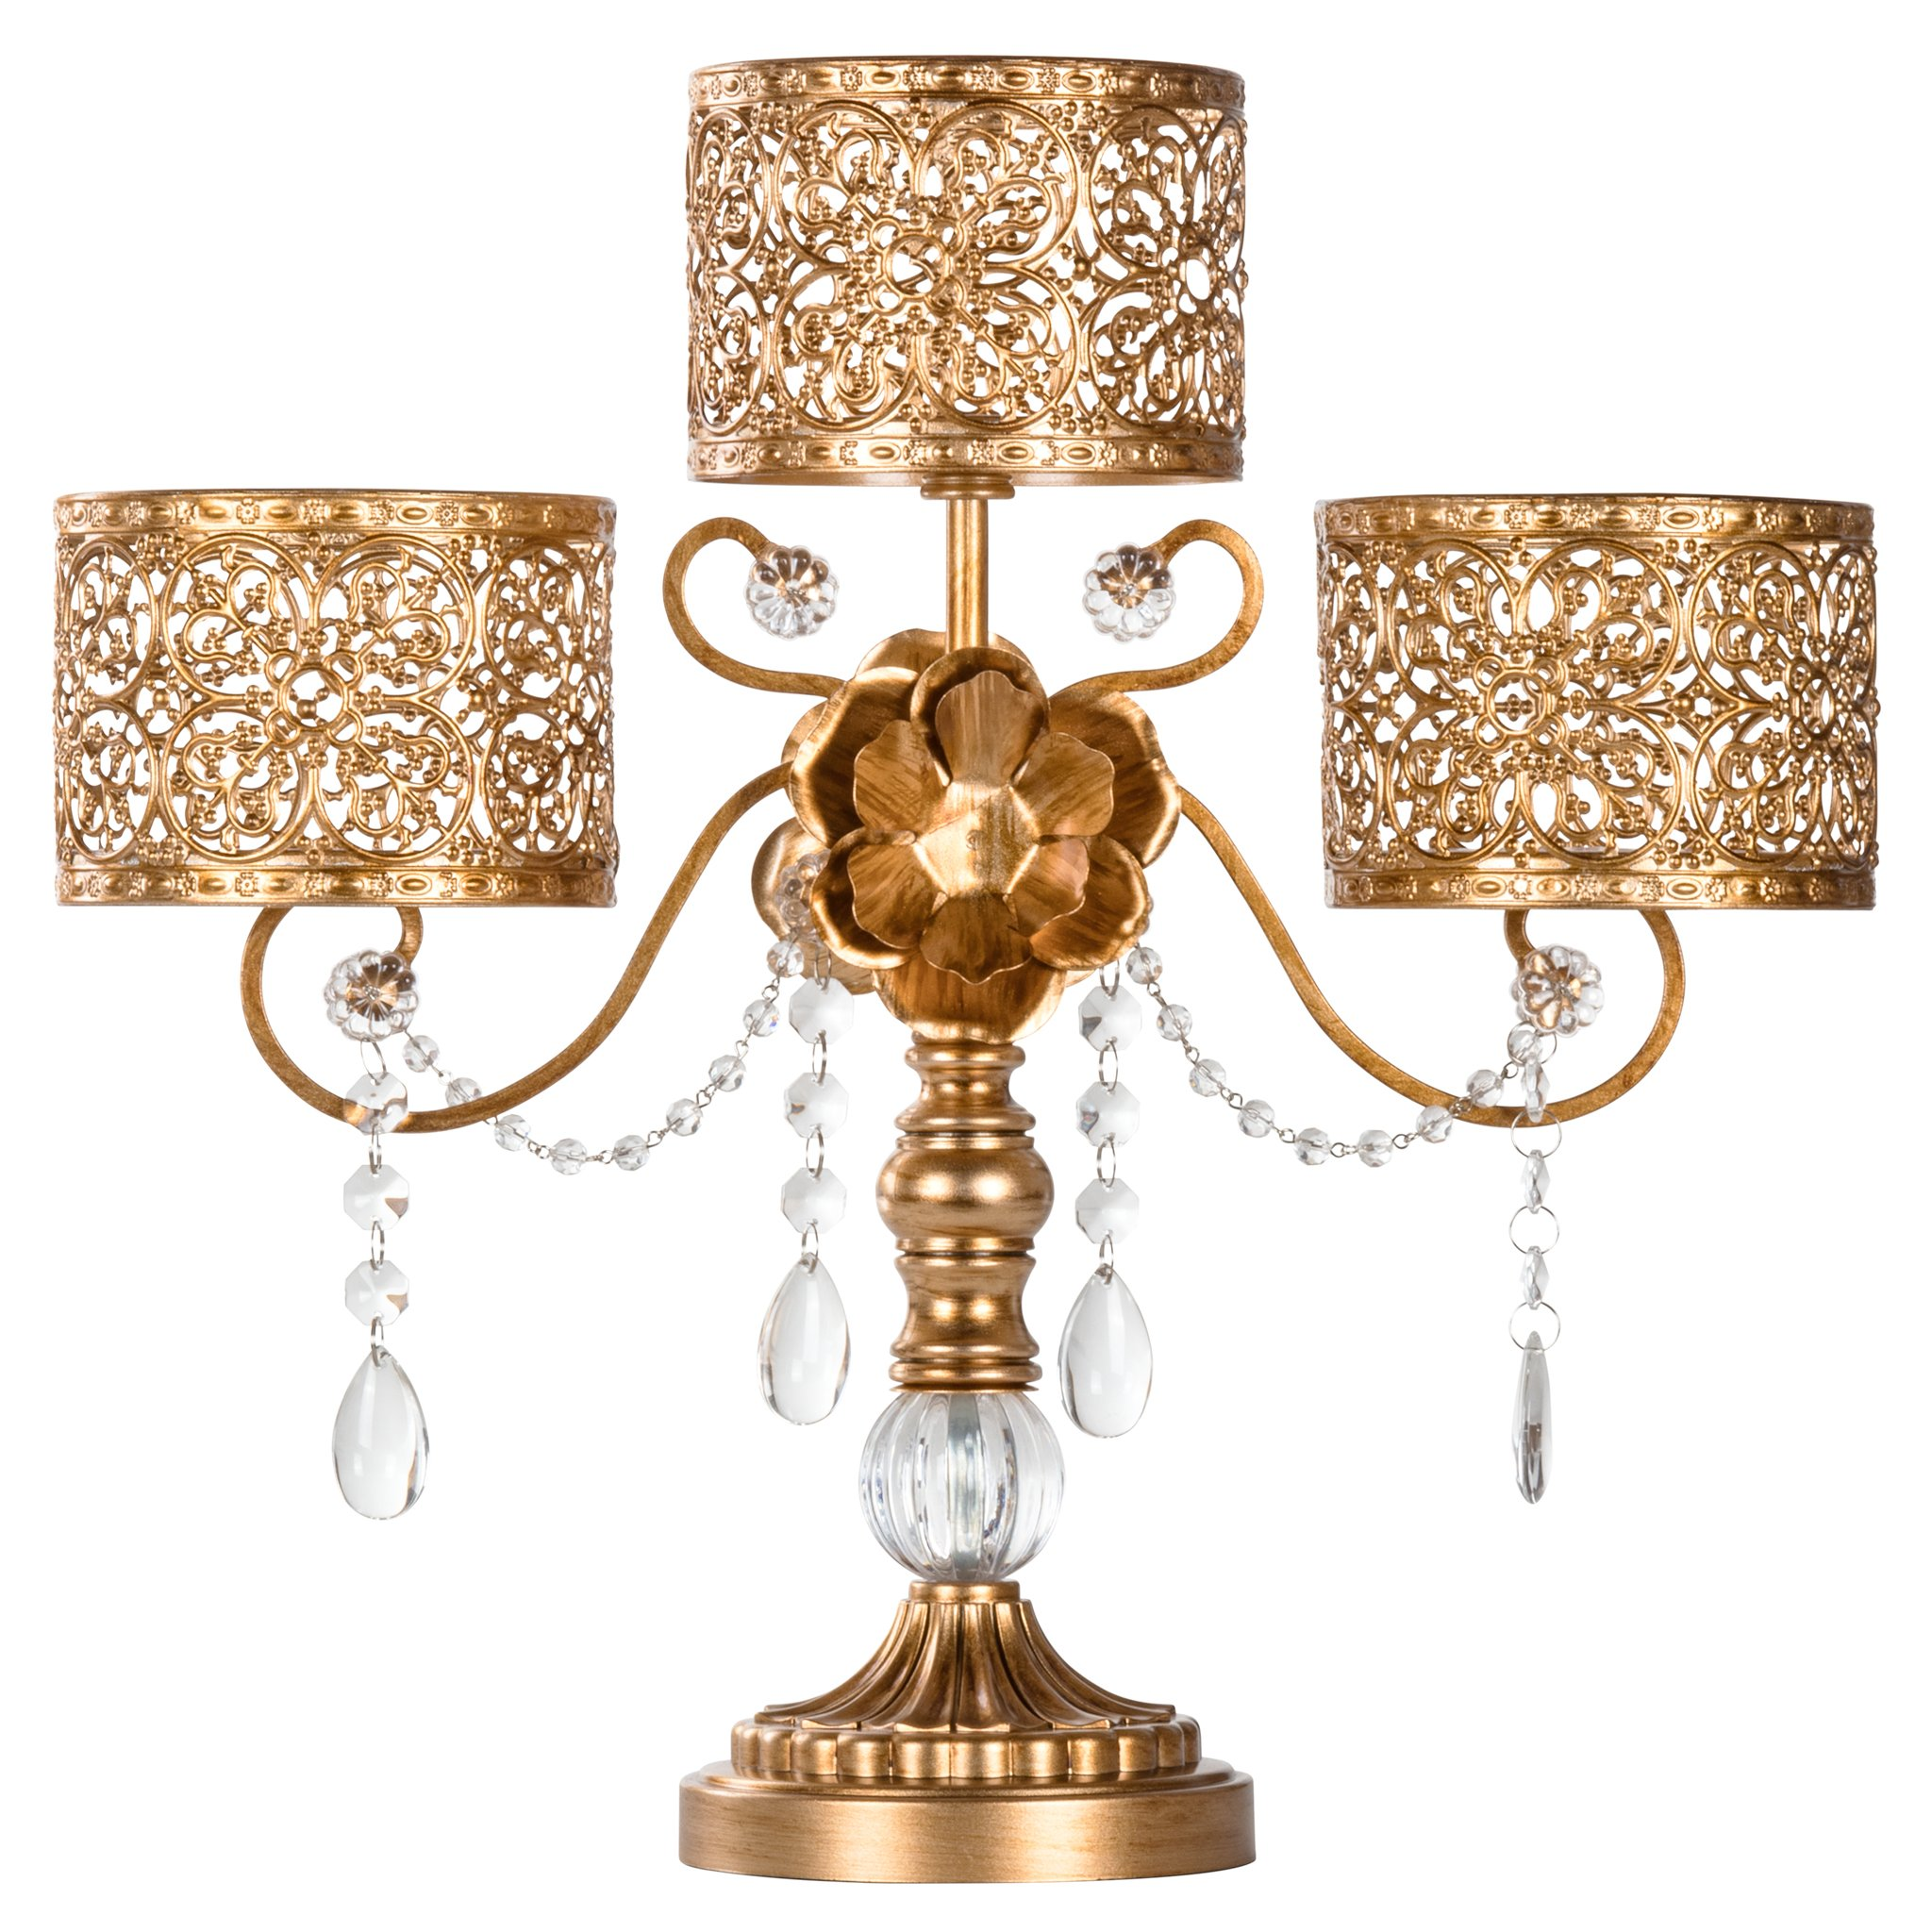 Amalfi Decor Antique 3 Pillar Crystal-Draped Hurricane Candle Holder Centerpiece (Gold) | Stainless Steel Frame with... by